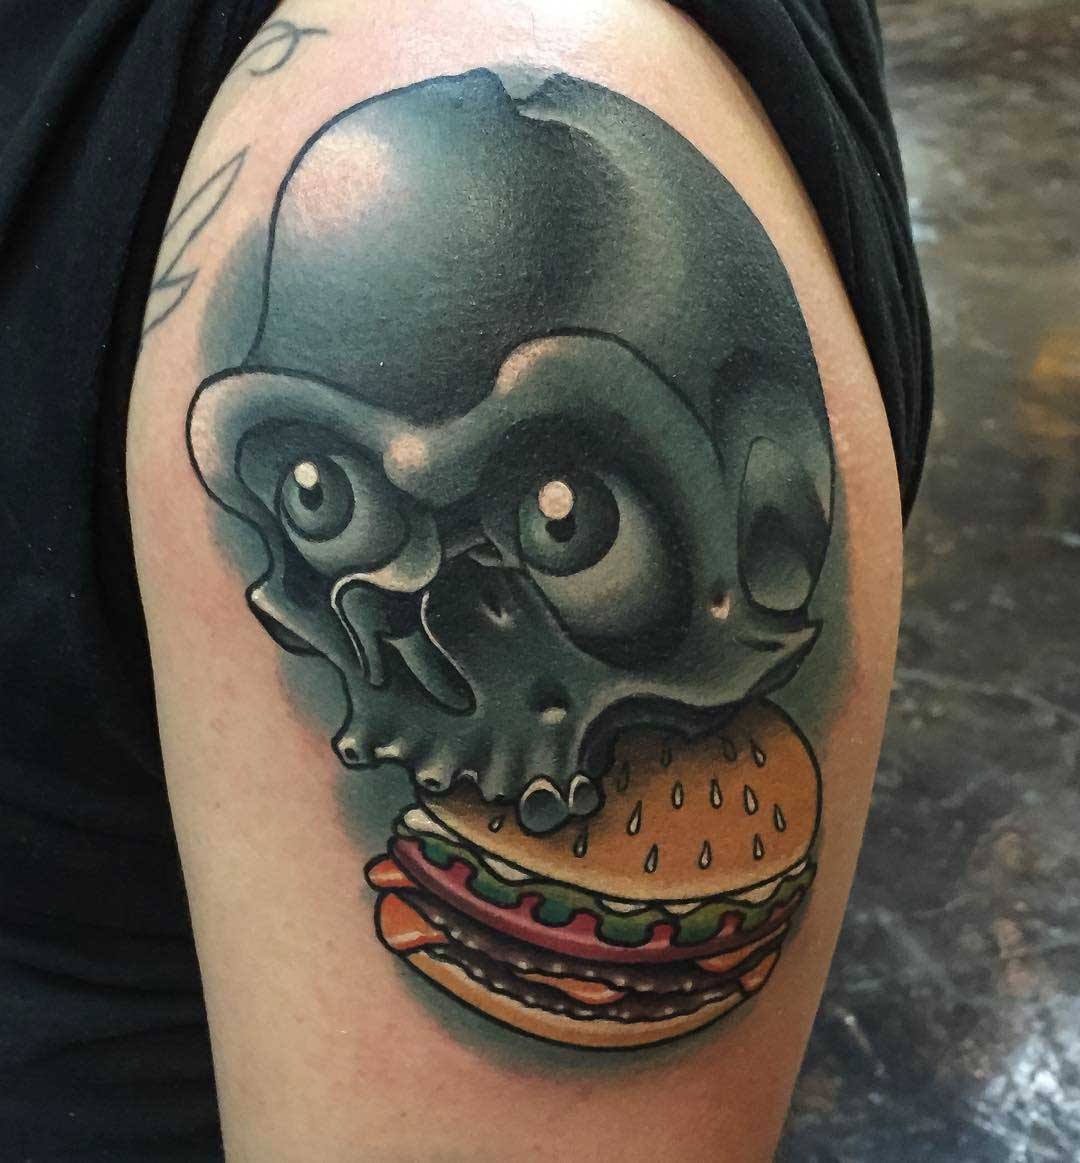 shoulder tattoo of skull and burger, new school style